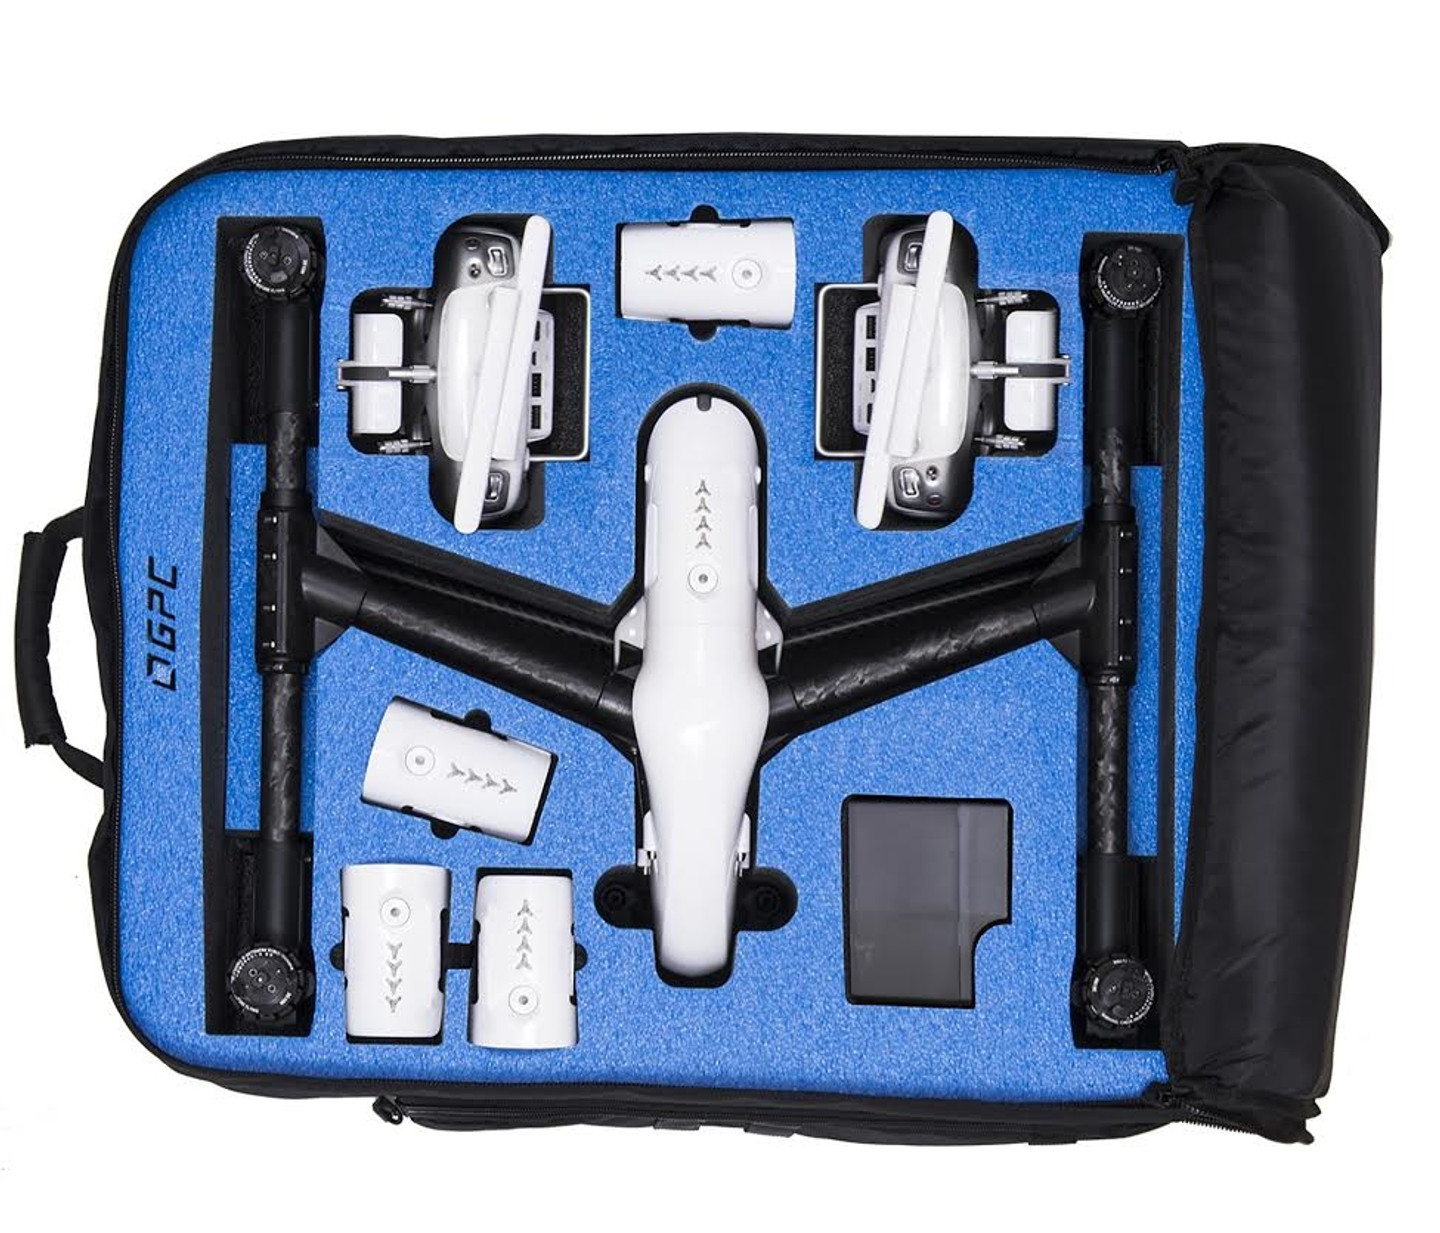 DJI Inspire 1 Backpack